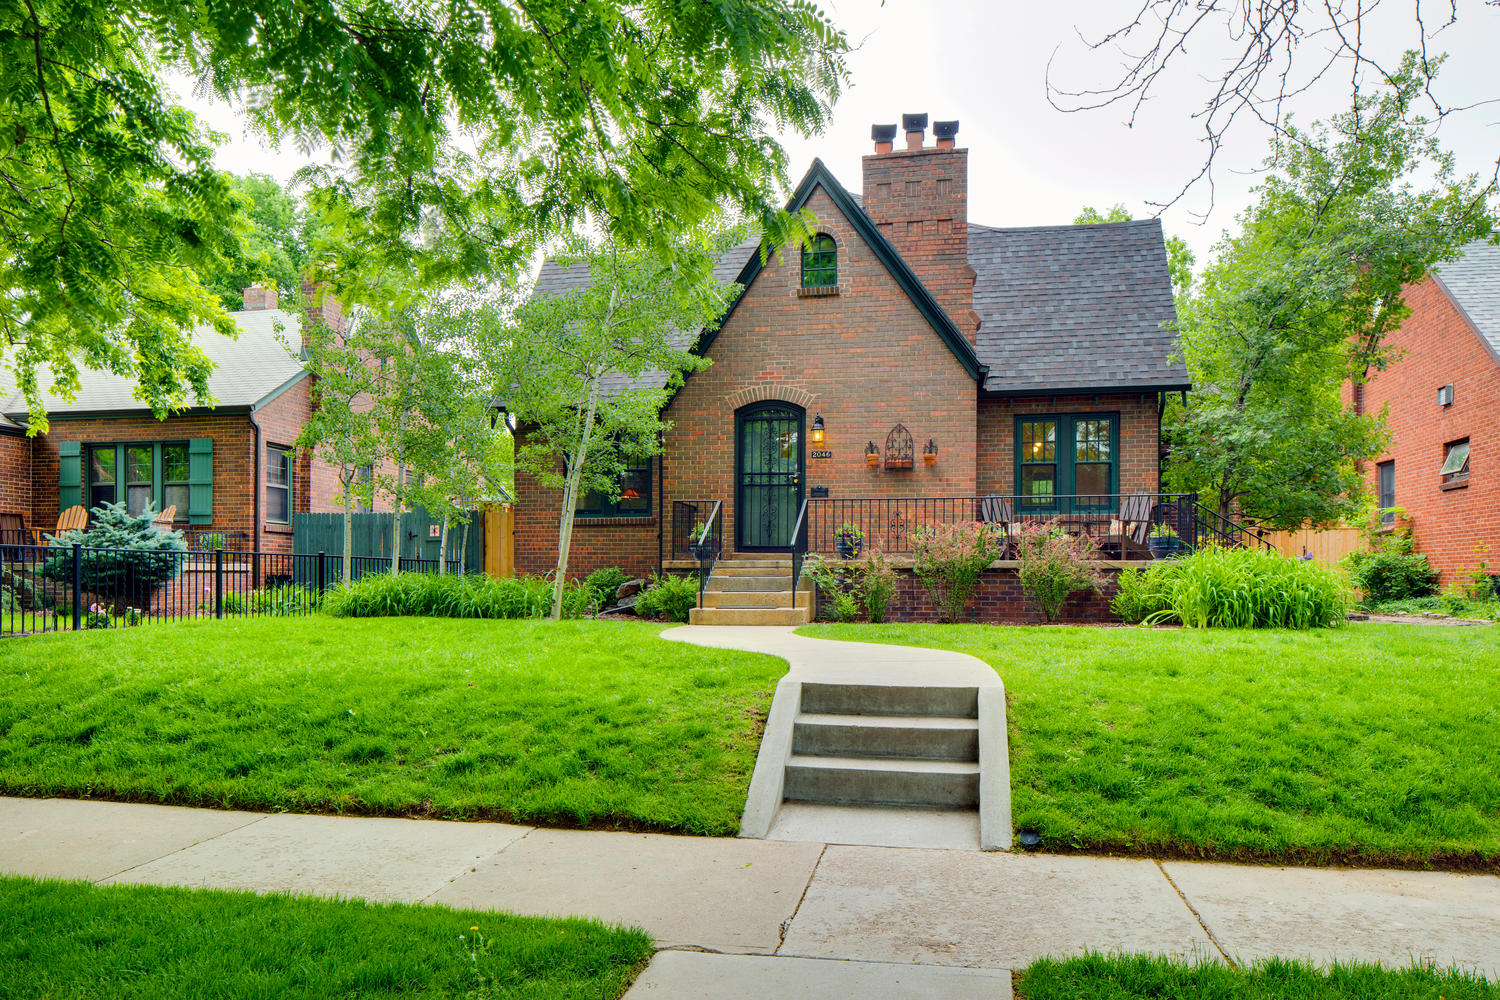 Single Family Home for Sale at Perfectly Situated Two-Story Tudor in Park Hill 2046 Kearney Street Denver, Colorado, 80207 United States